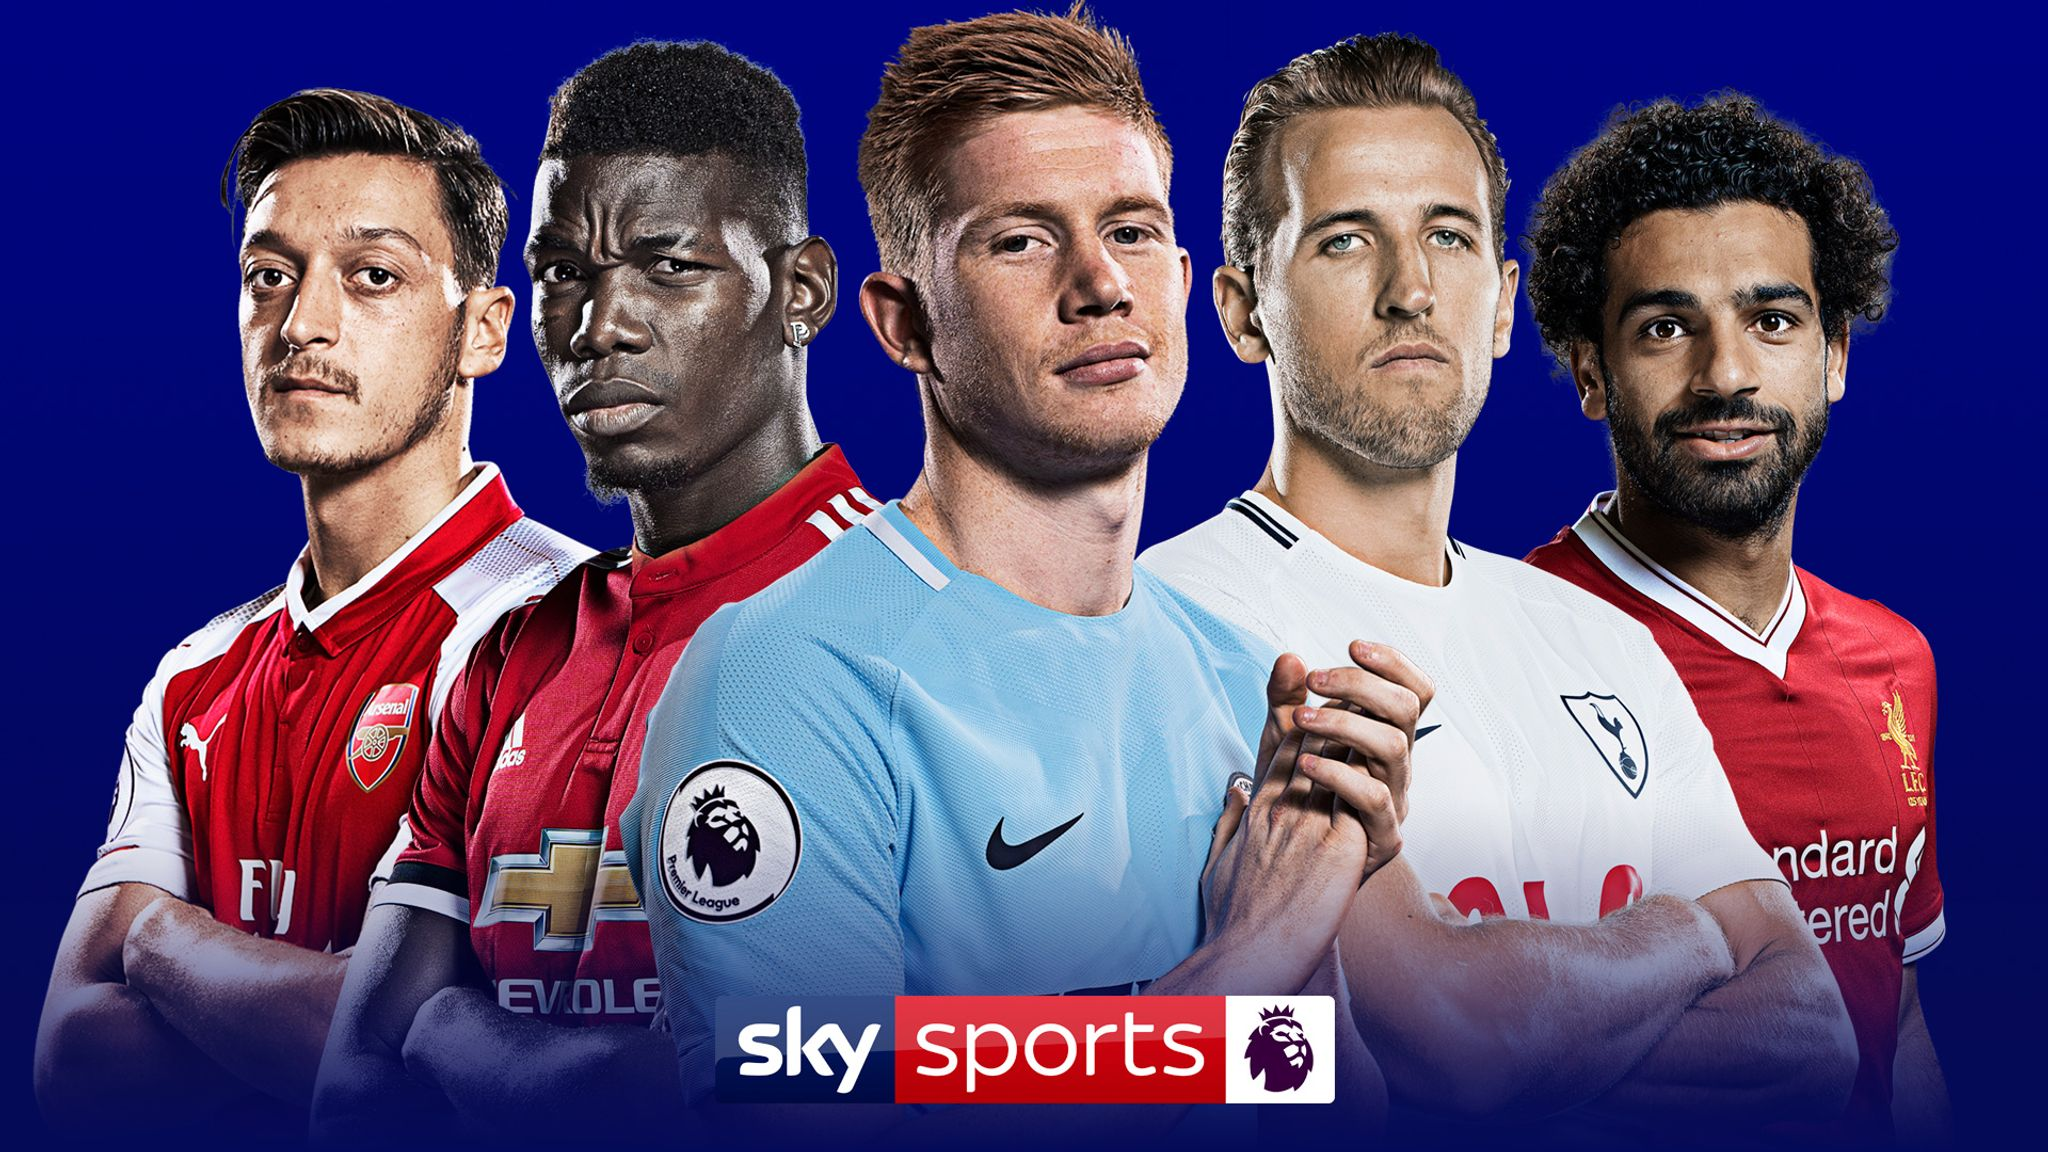 Premier League Fixtures Live On Sky Sports Manchester United Kick Off 2018 19 Season Football News Sky Sports